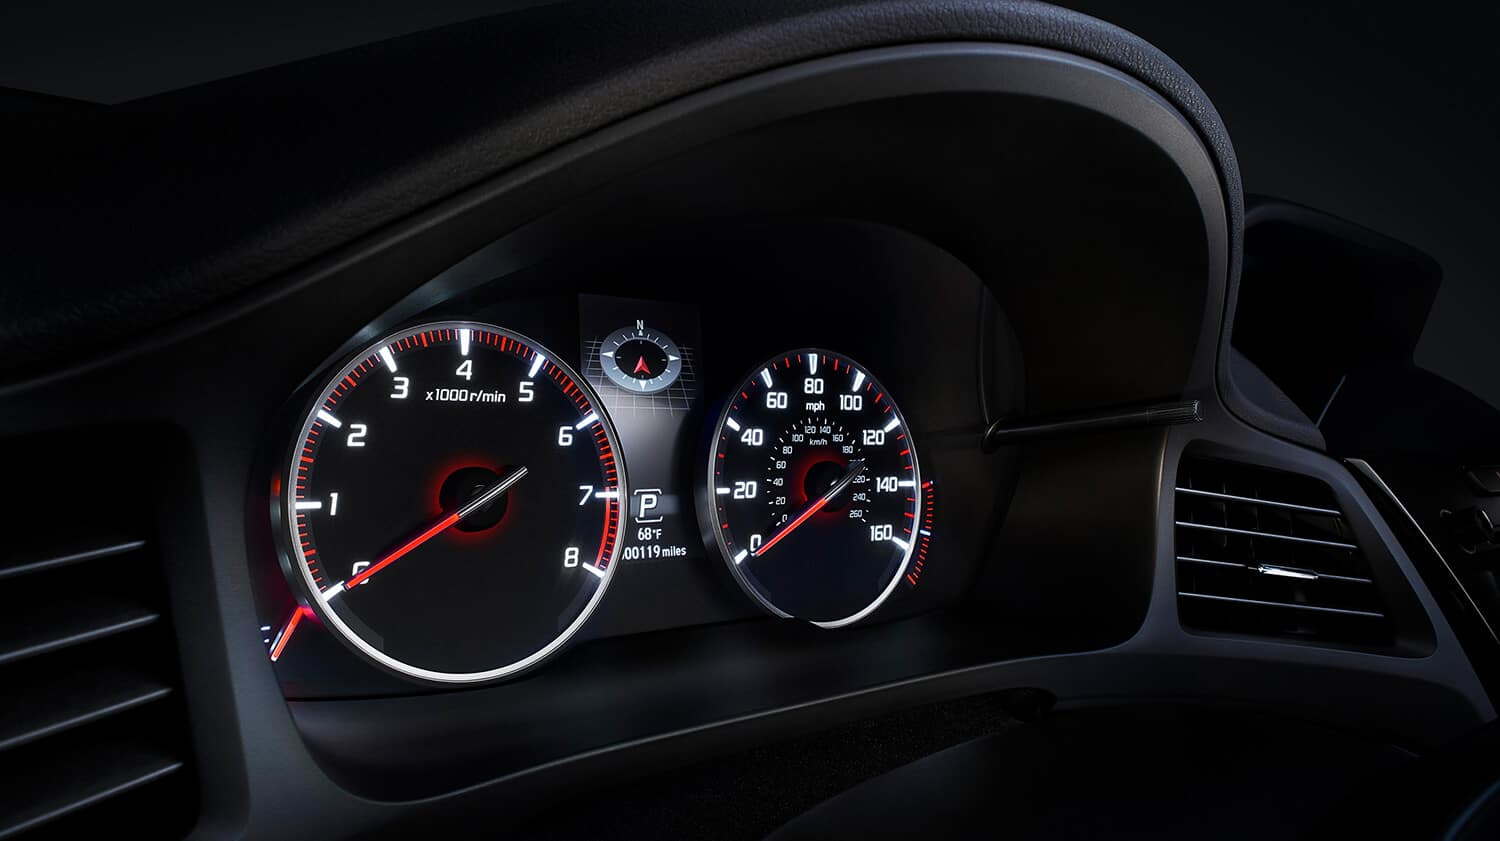 2019 Acura ILX Interior Gauges